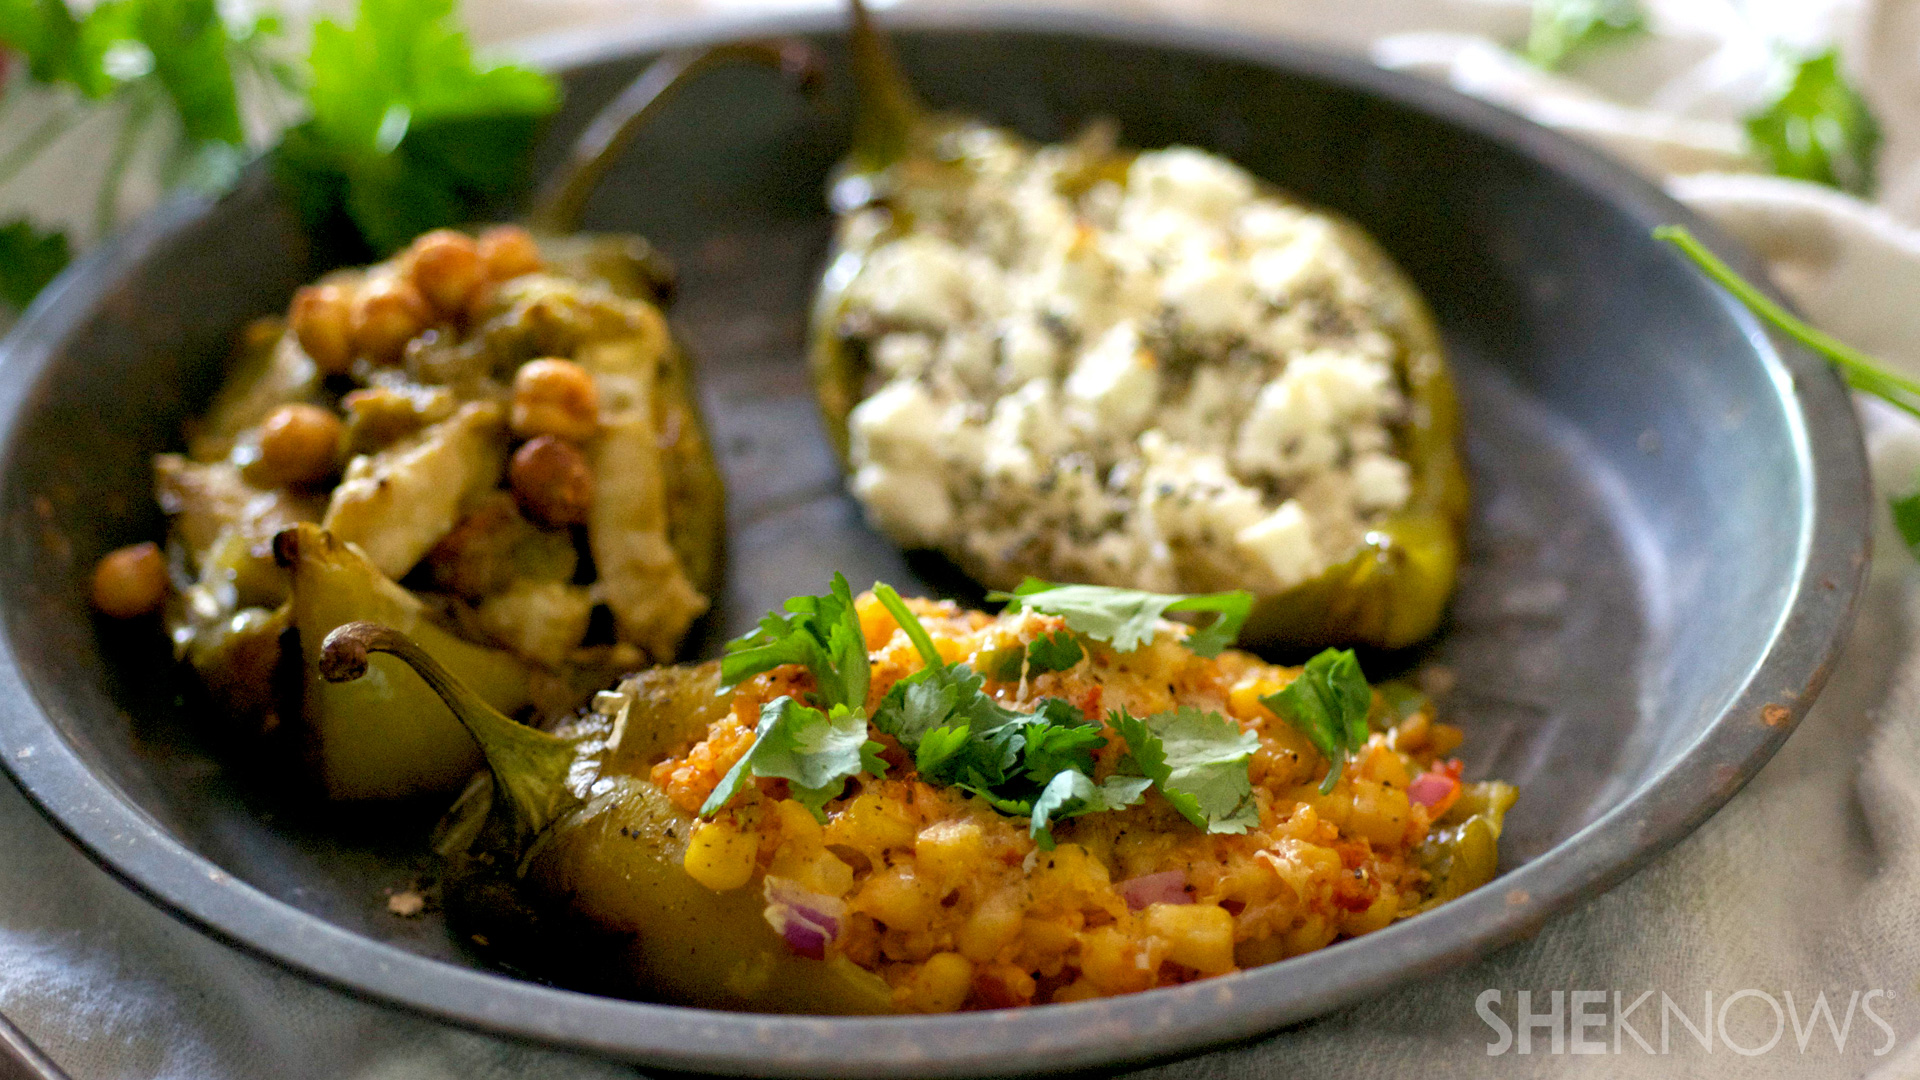 3 Stuffed and grilled poblano peppers